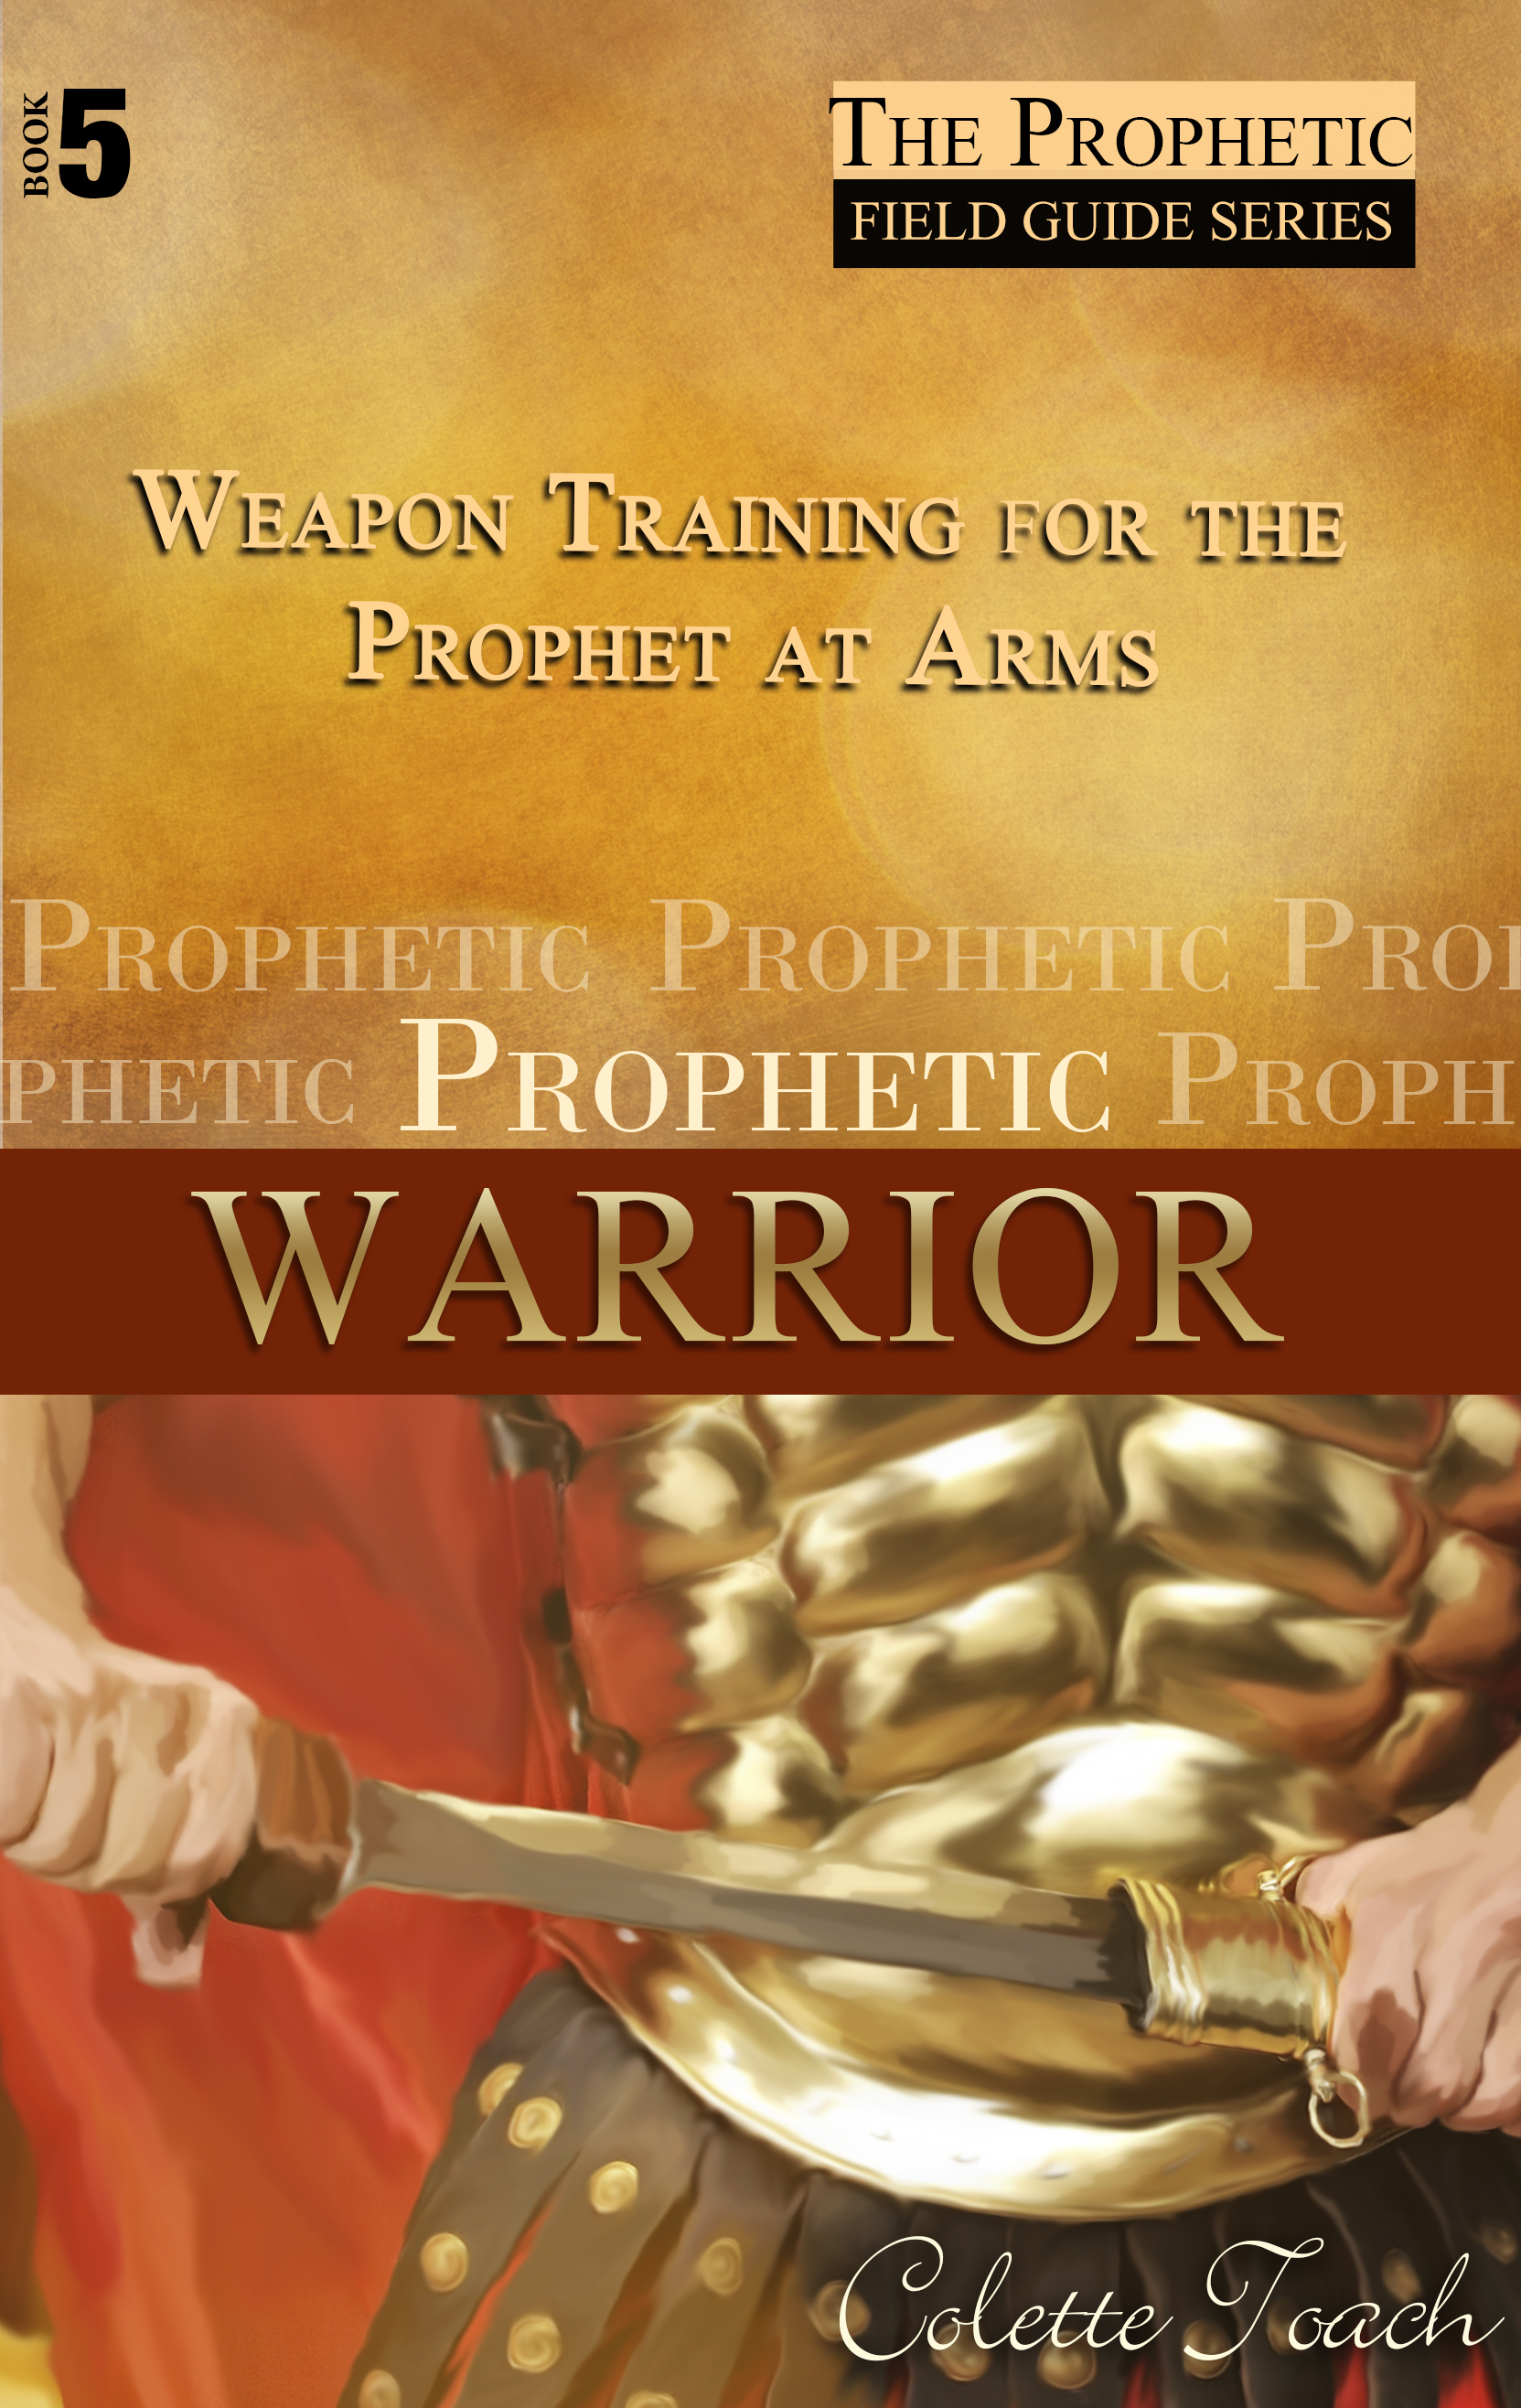 Prophetic_Warrior_Front.jpg